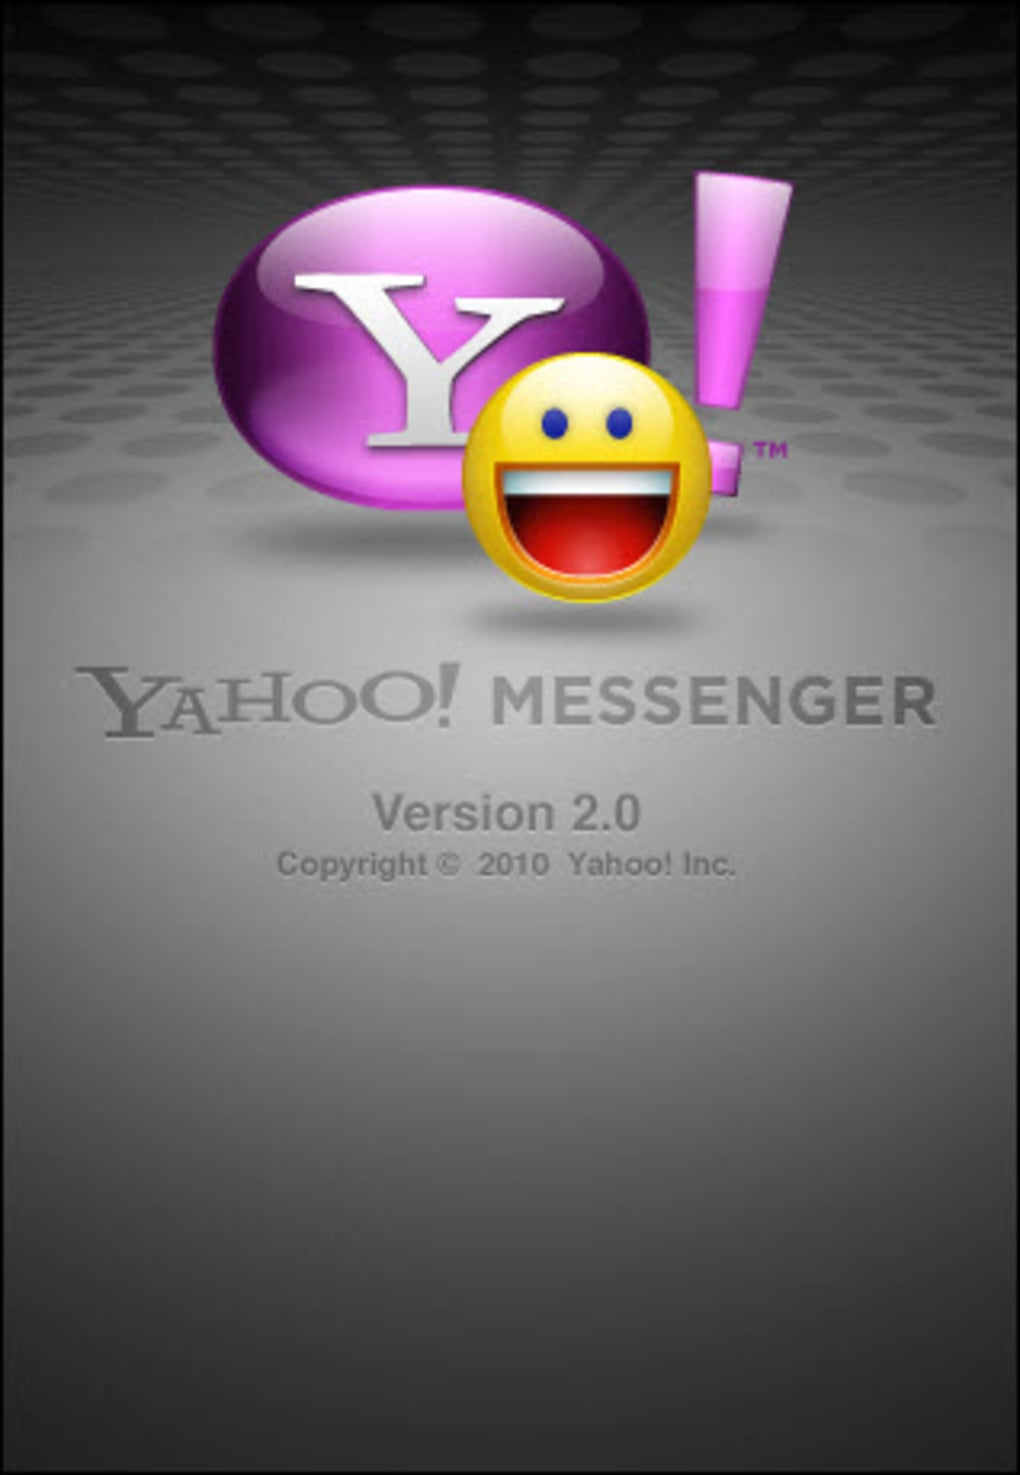 3 ways to download yahoo messenger wikihow.